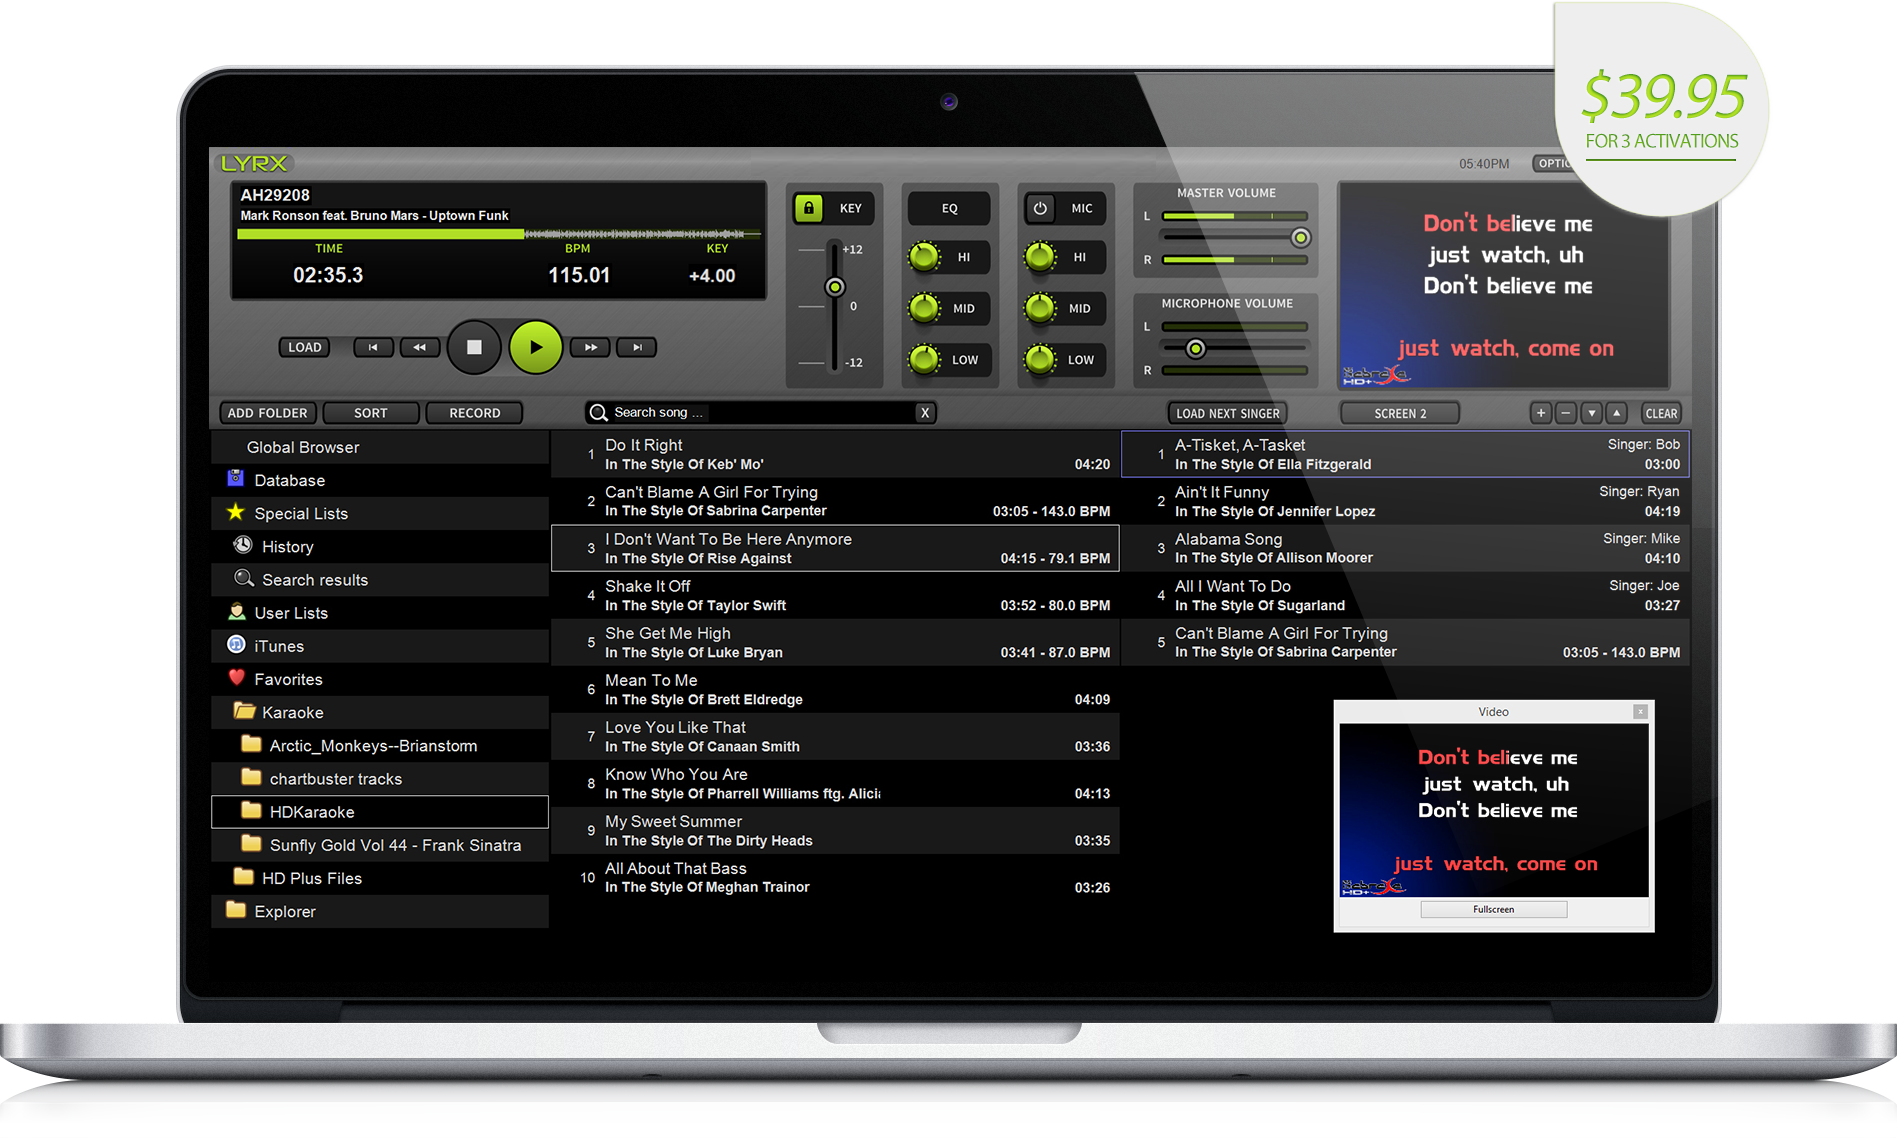 LYRX karaoke software for MAC